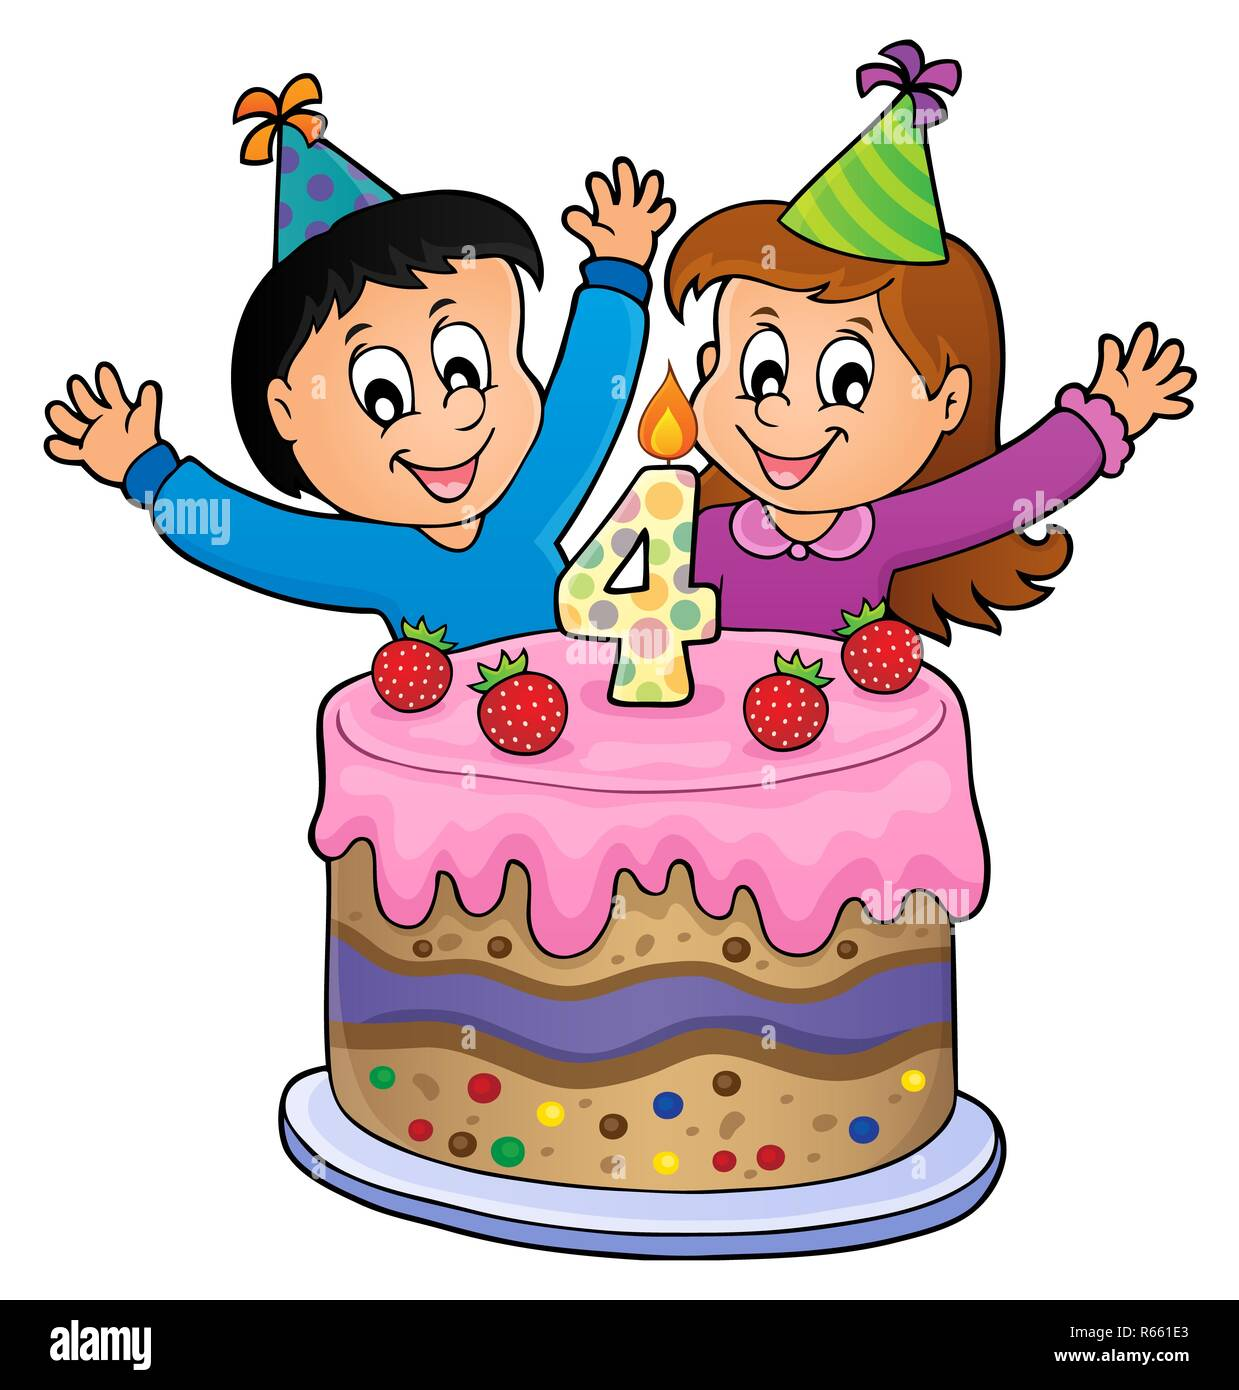 Search Results For 4 Year Old Boy Birthday Cake Cut Out Stock Images Pictures